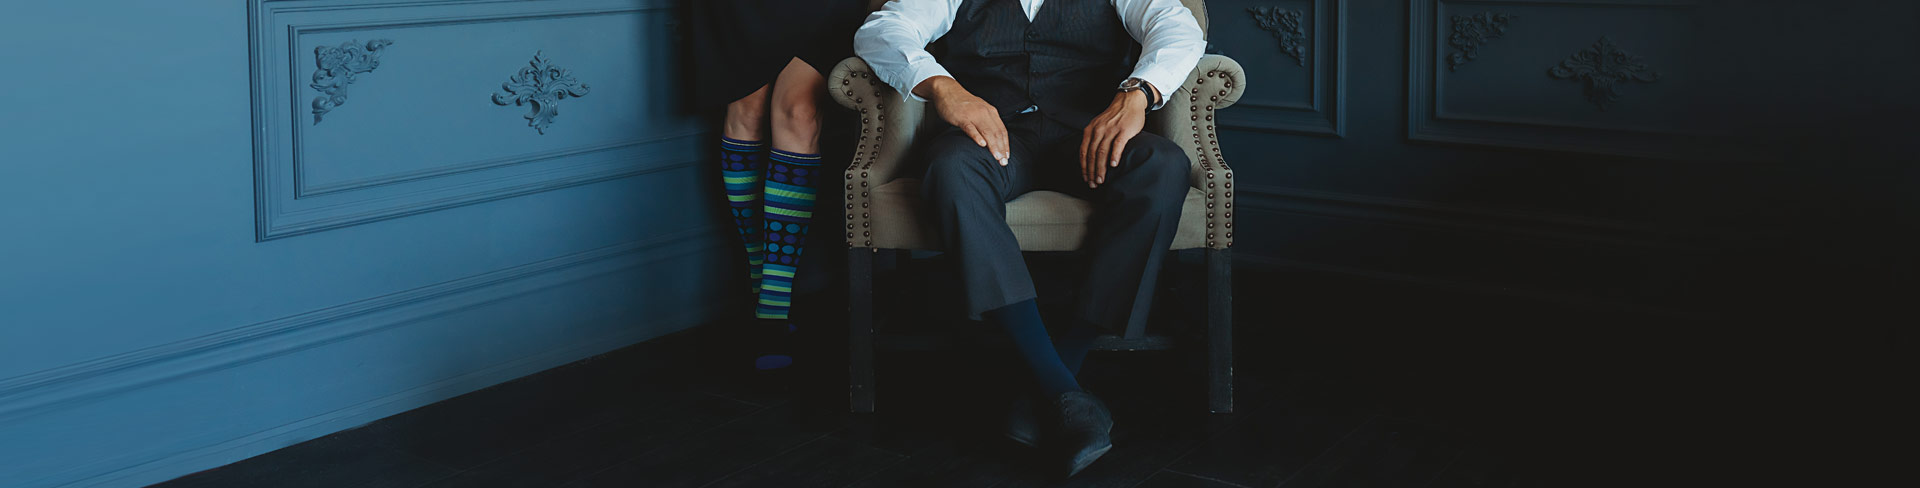 Sleek Compression Socks